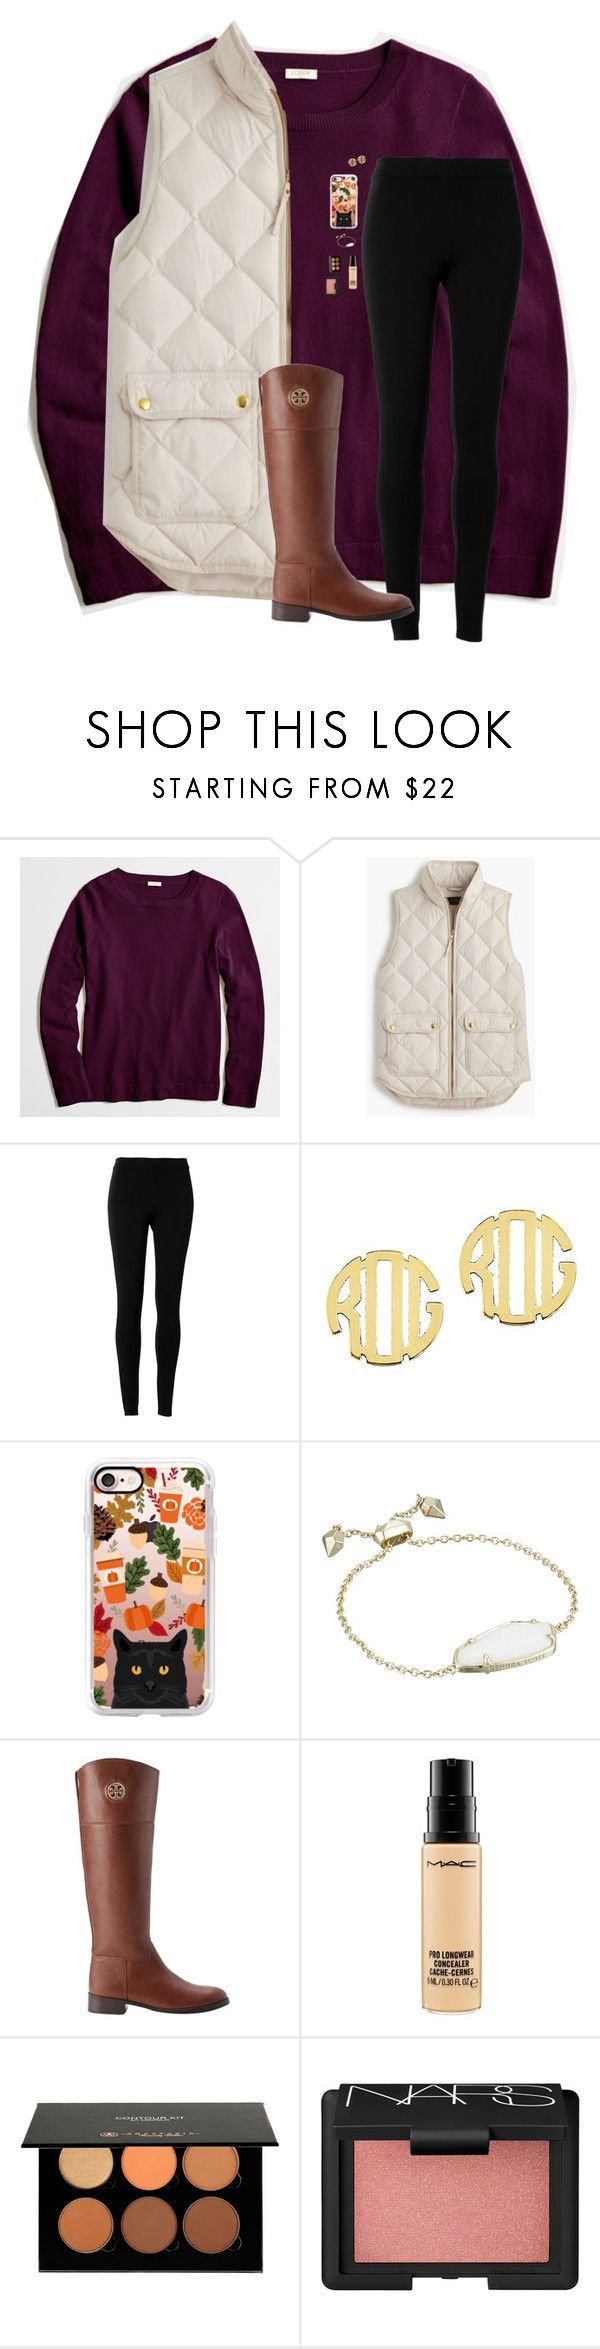 """""""J Crew Fall Outfit Contest"""" by beautygirl480 ❤ liked on Polyvore featuring J.Crew, Max Studio, QVC, Casetify, Kendra Scott, Tory Burch, MAC Cosmetics, Anastasia and NARS Cosmetics"""